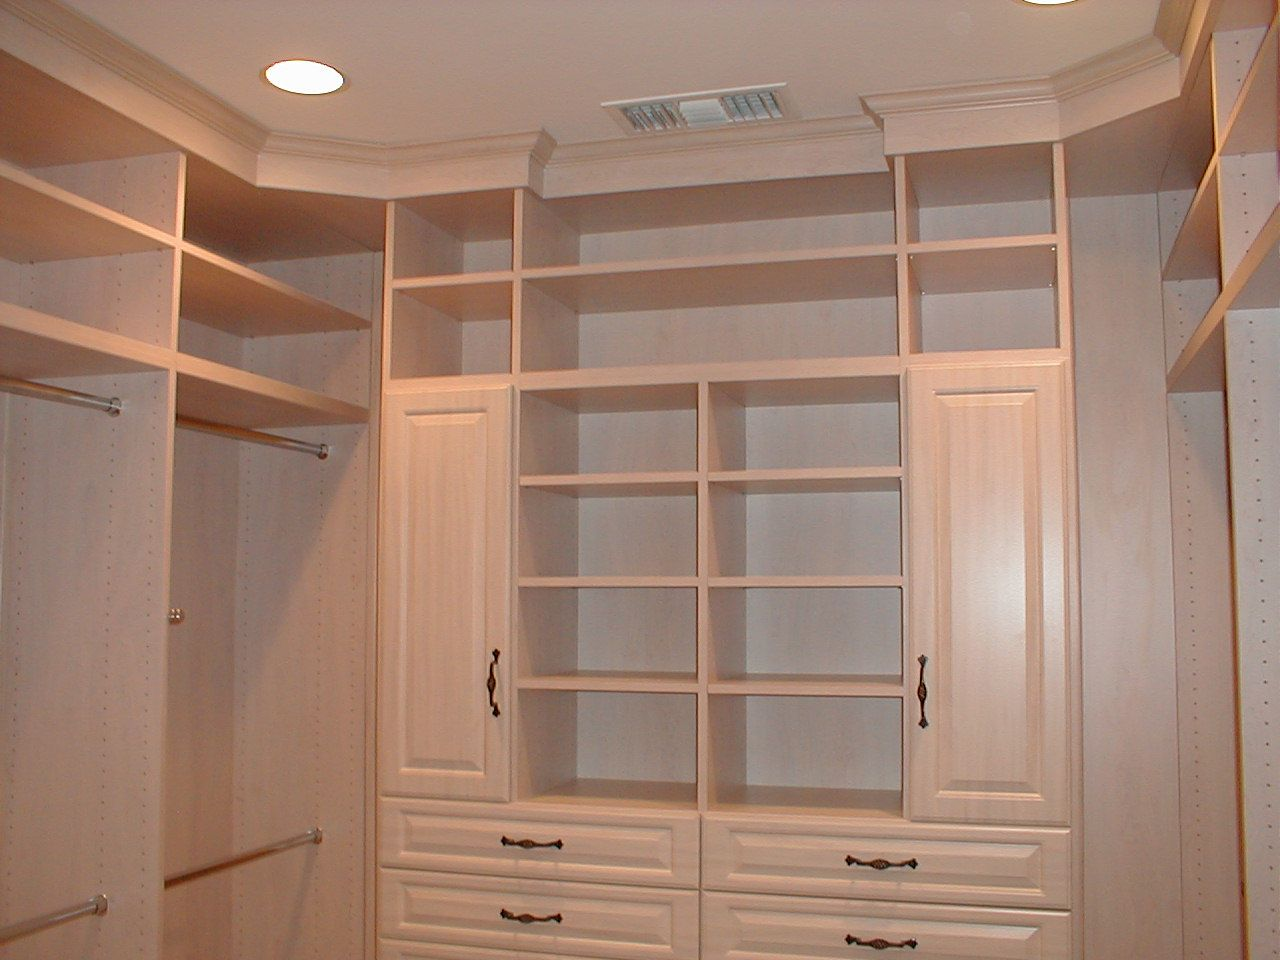 for interior home design excellent with virtual closet designs ideas on designer